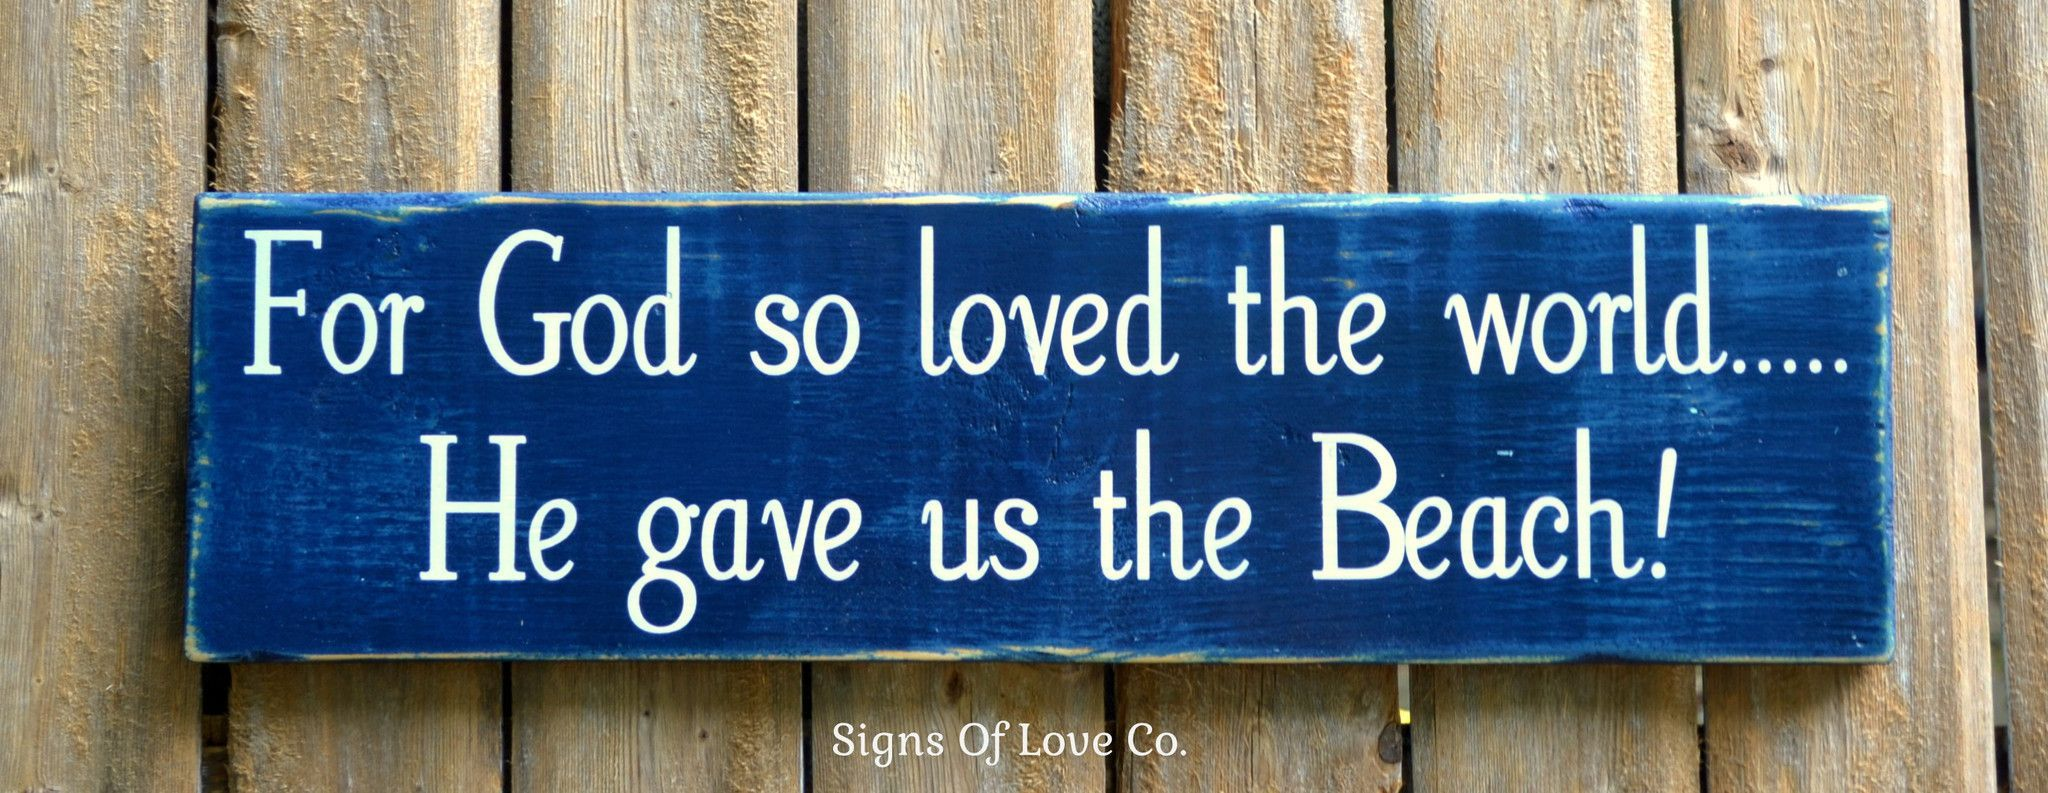 for god so loved the world beach sign world signs and nautical